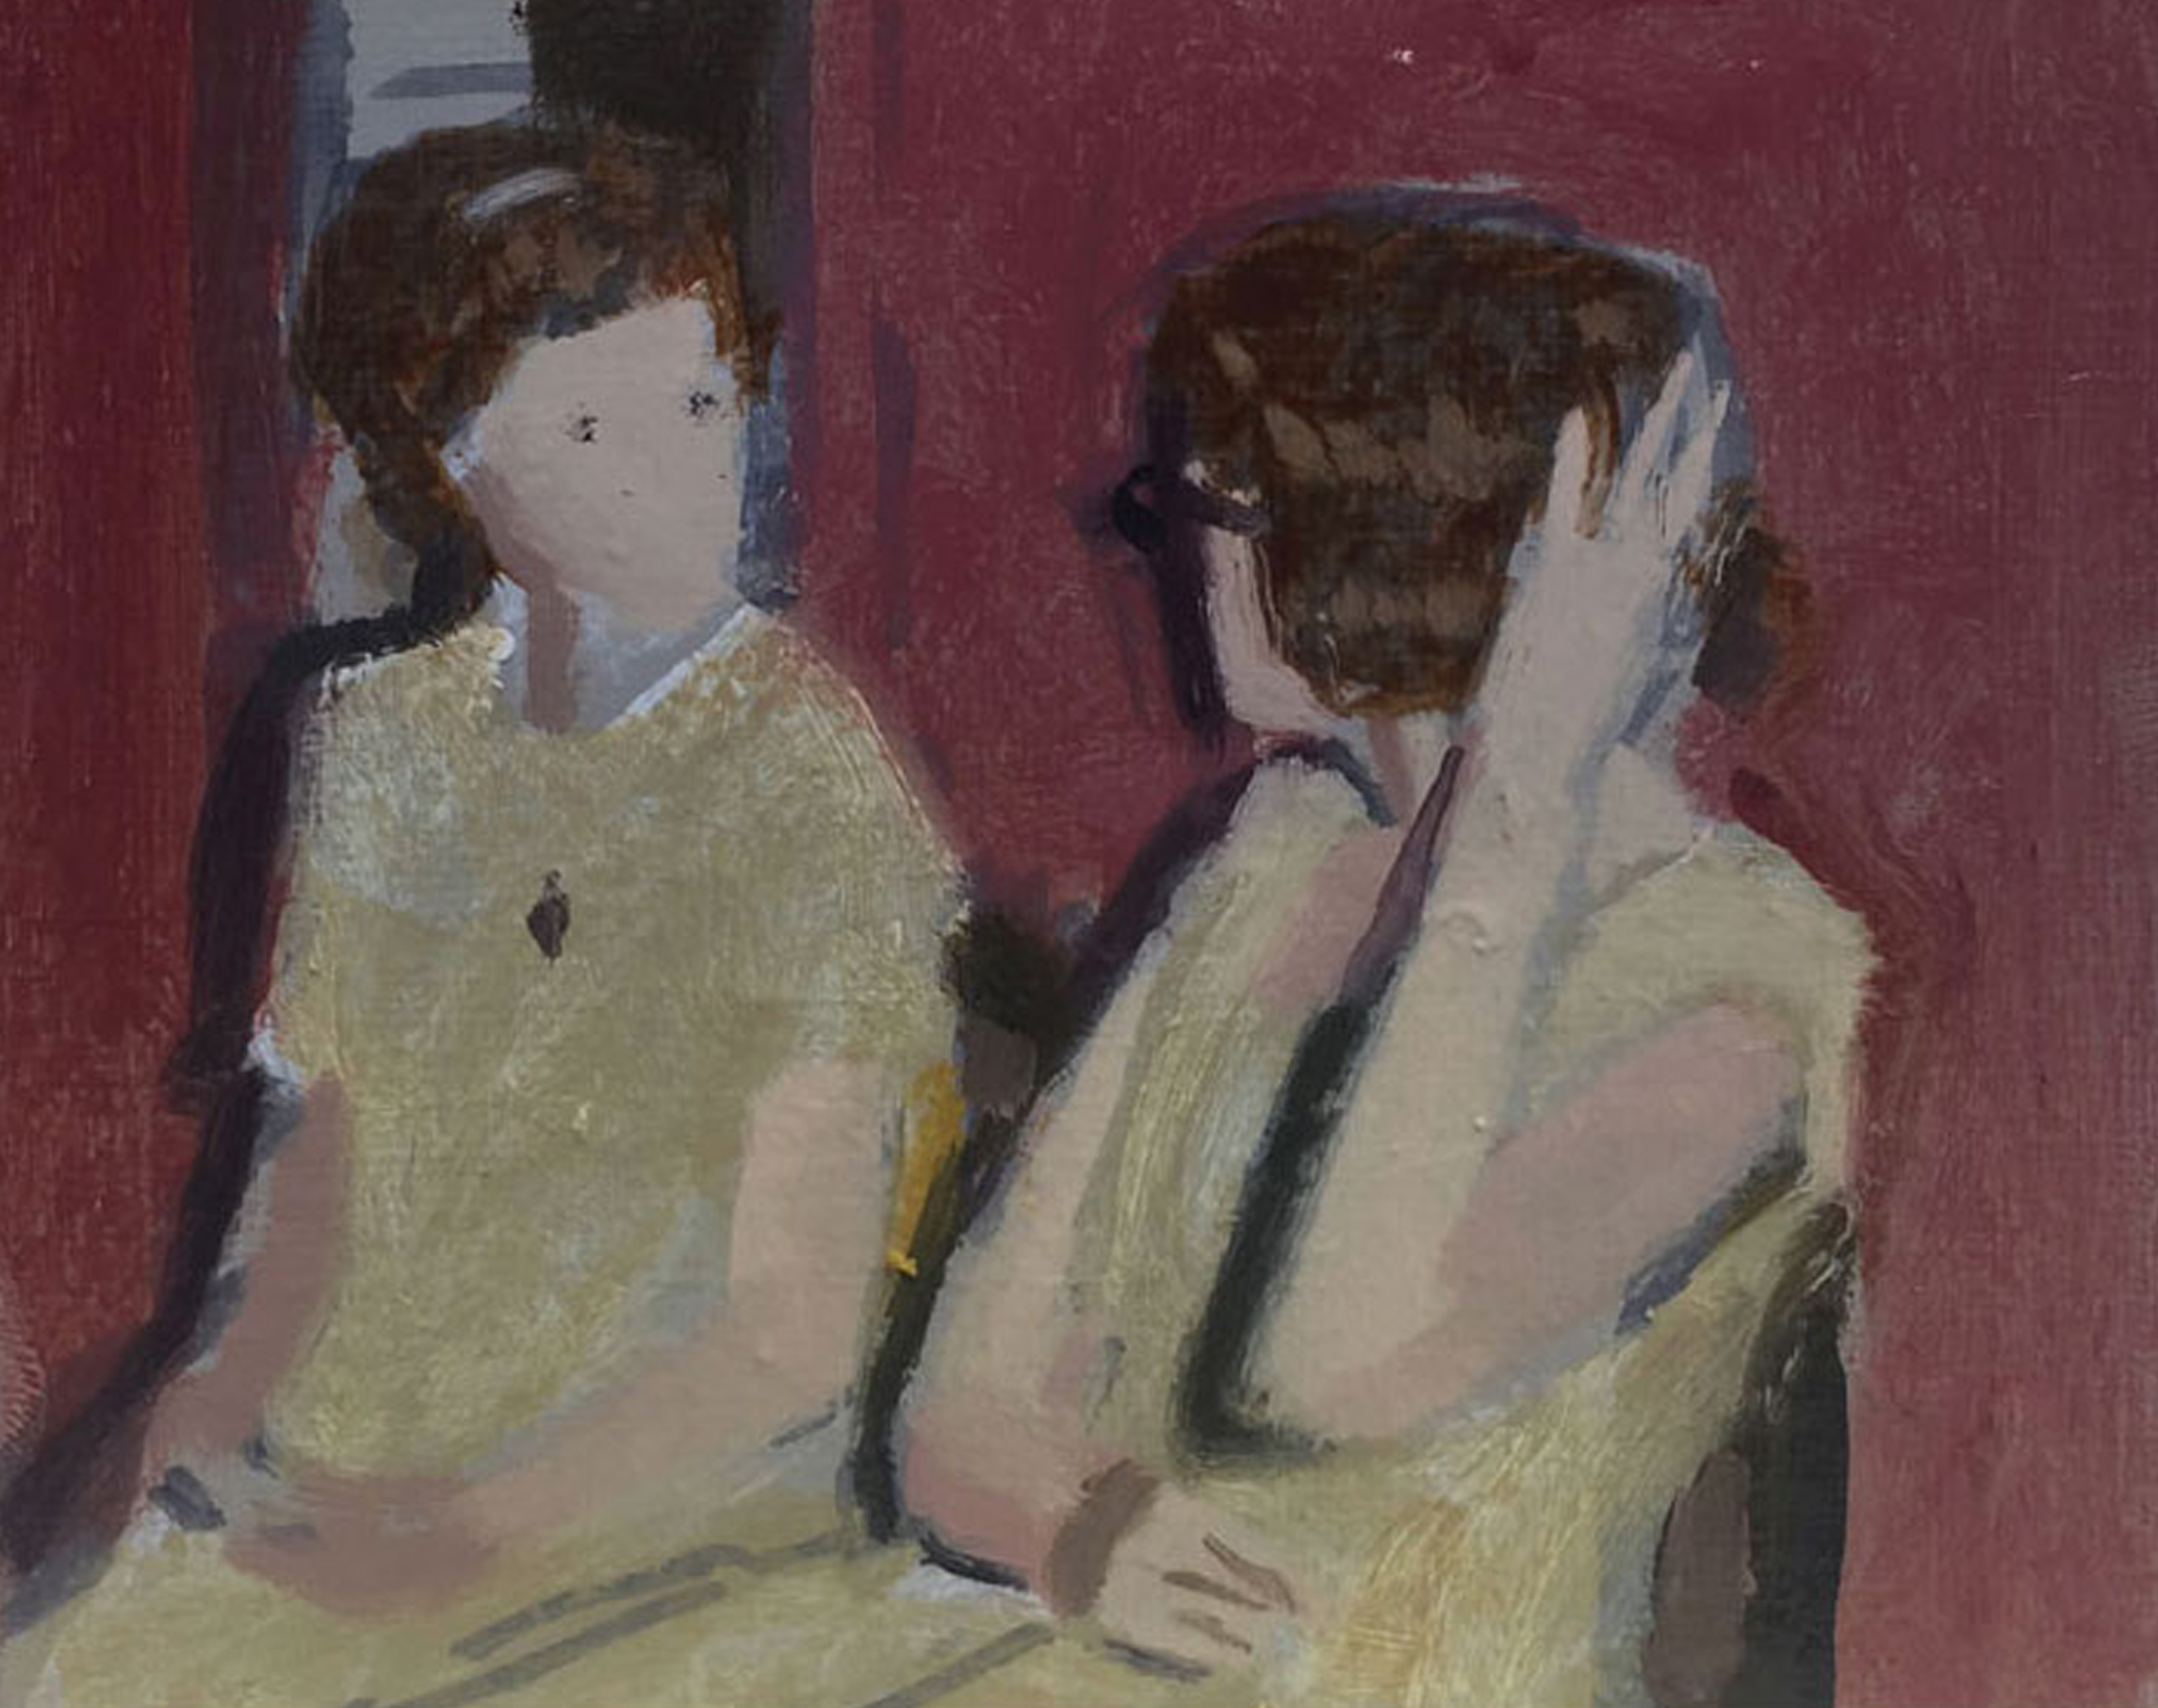 Artist: David Storey  Title: Two Women Talking  Size: 10 x 13 cm  Medium: Egg tempera and oil on panel  SOLD